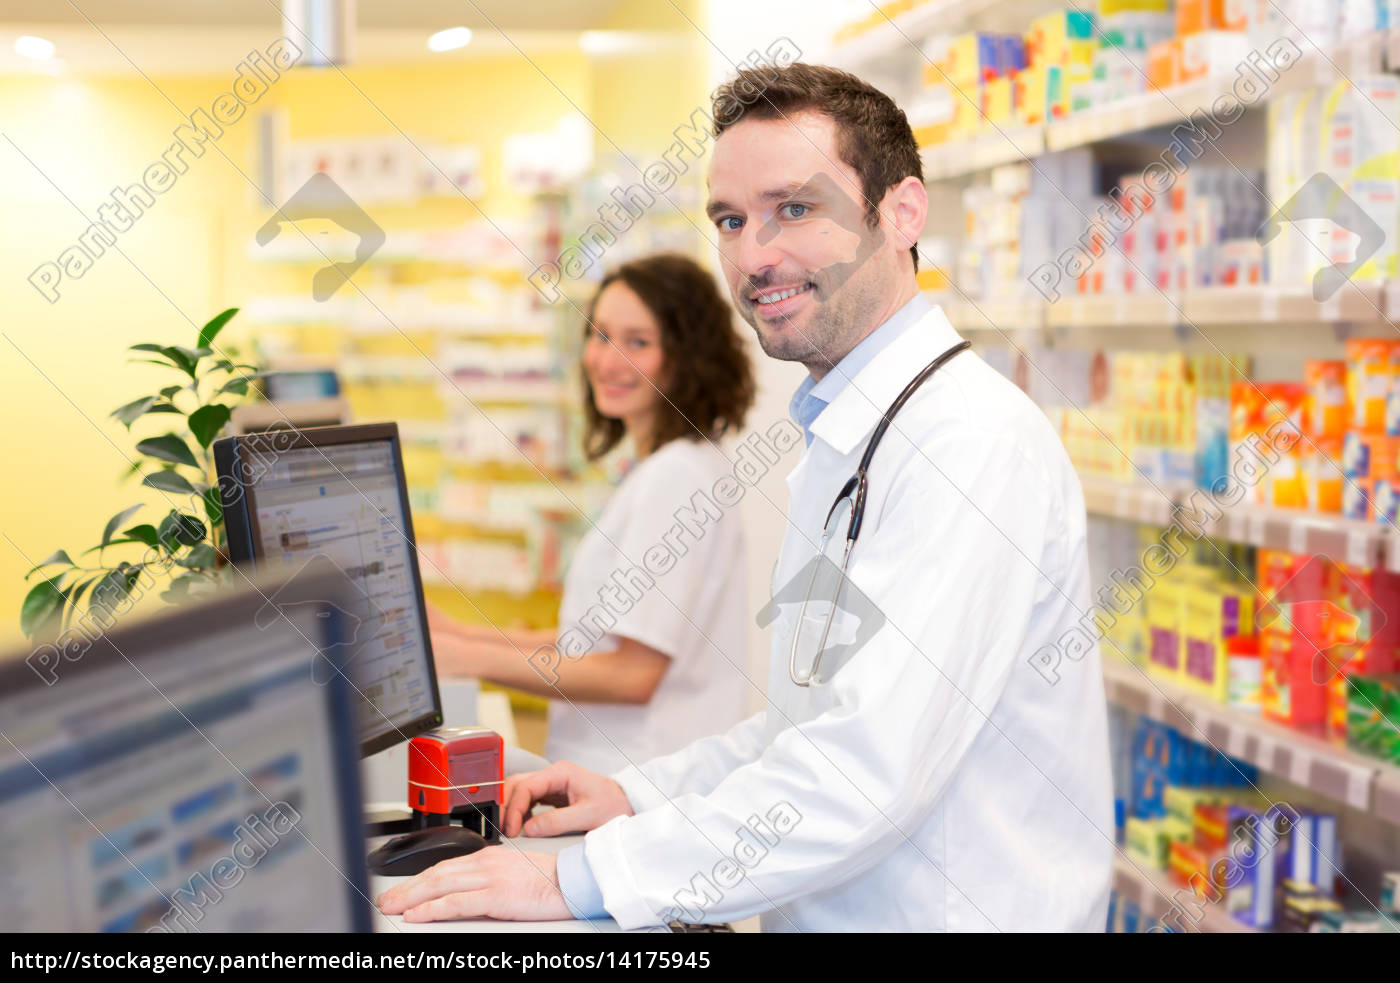 portrait, of, an, attractive, pharmacist, team - 14175945